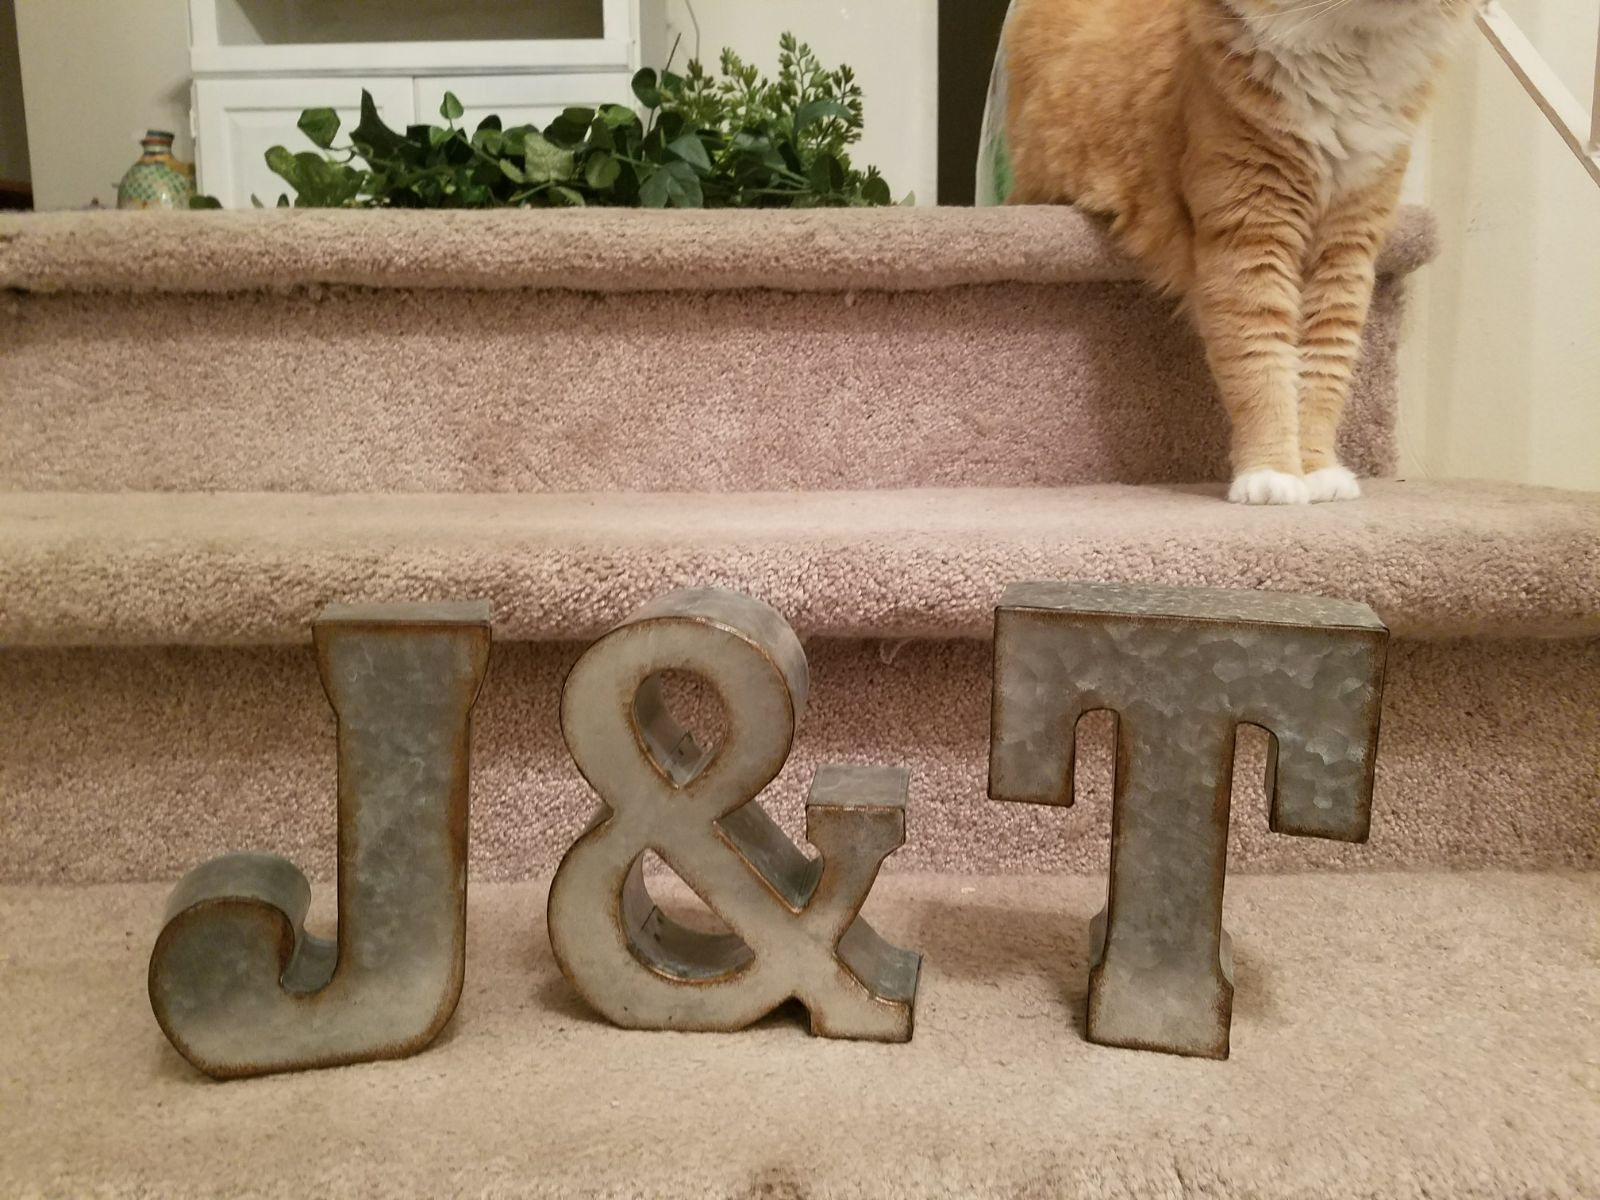 Galvanized Letters Galvanized Metal Letters J & T  Mercari Buy & Sell Things You Love